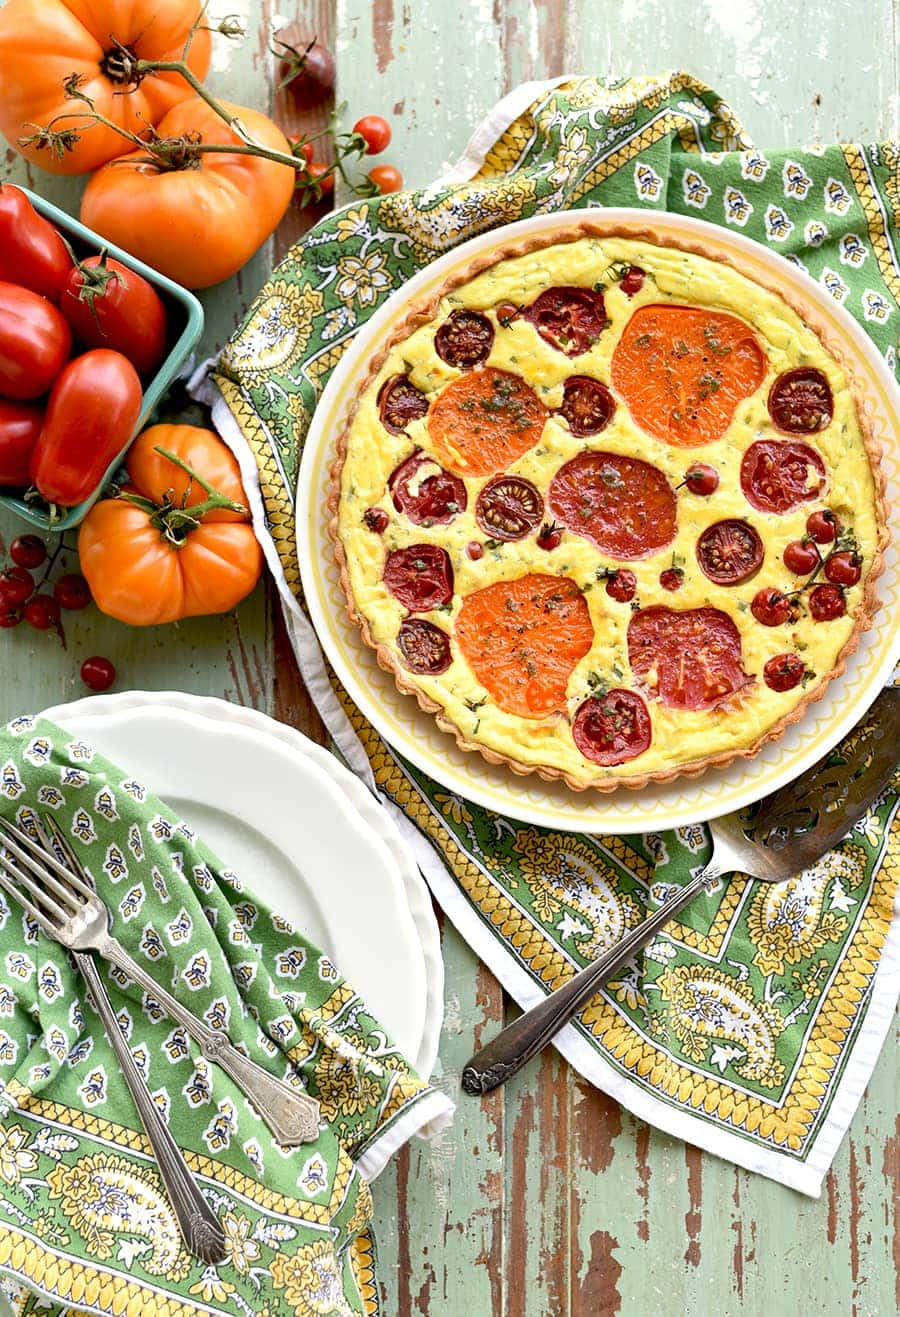 This Heirloom Tomato Tart is what summer tastes like! It's full of bright, savory flavors that compliment heirloom tomatoes of any size or color.